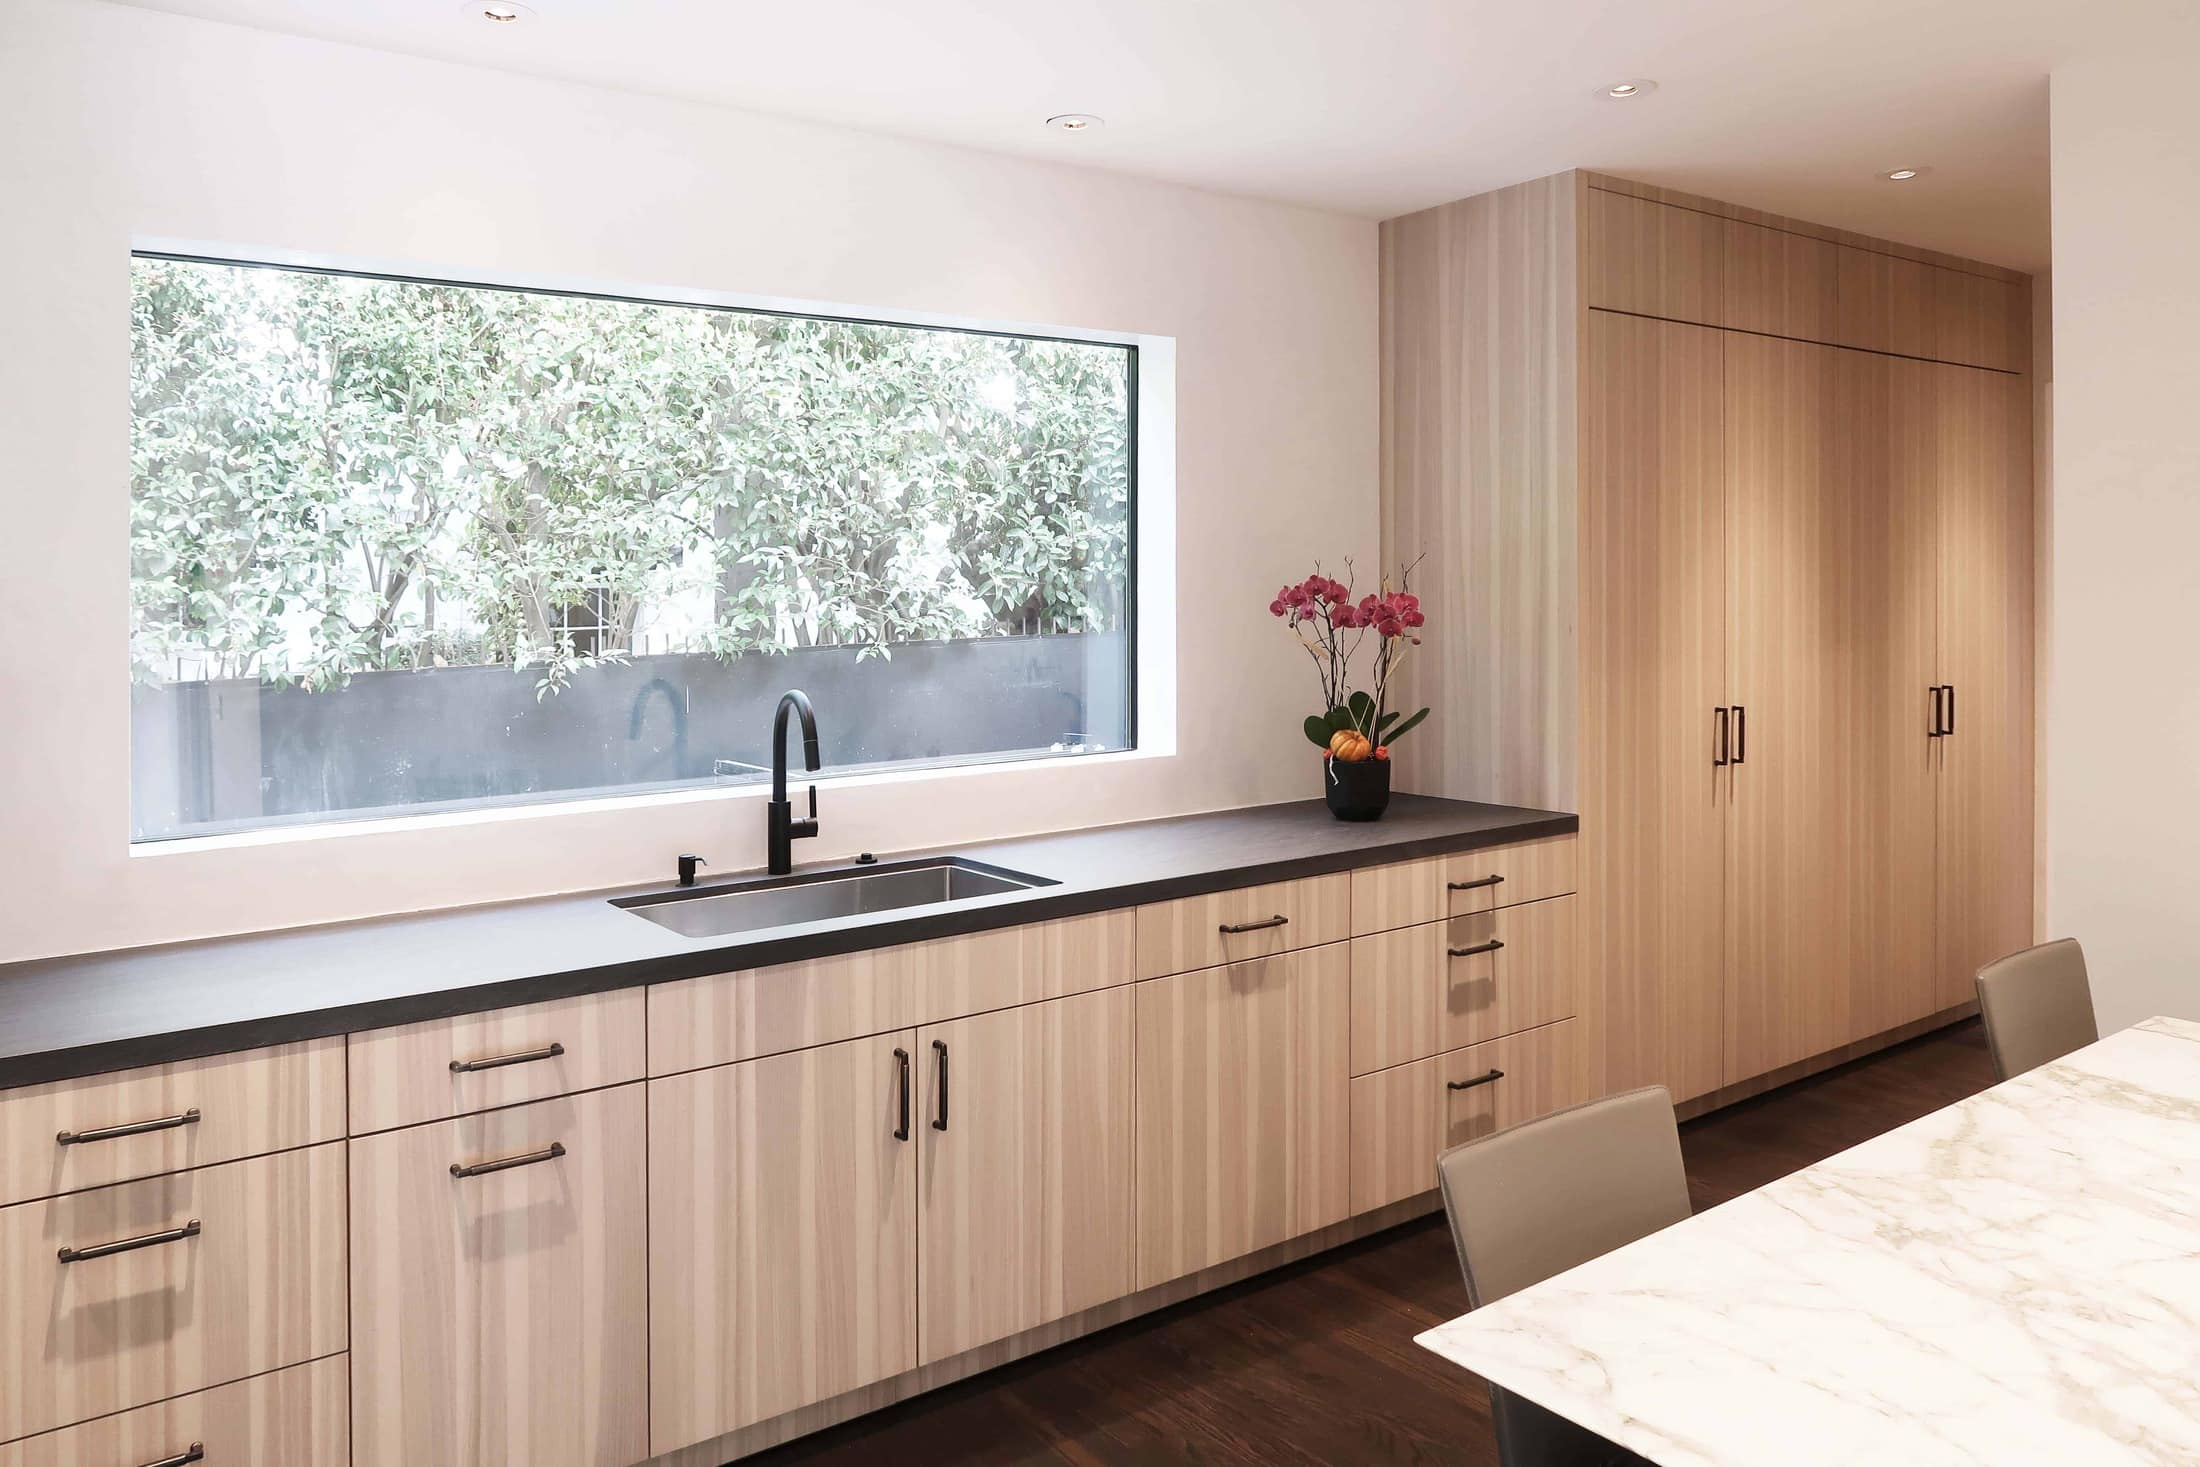 after picture of the sink and exterior window of a modern eggersmann kitchen with traditional touches created in a hancock park traditional home in los angeles